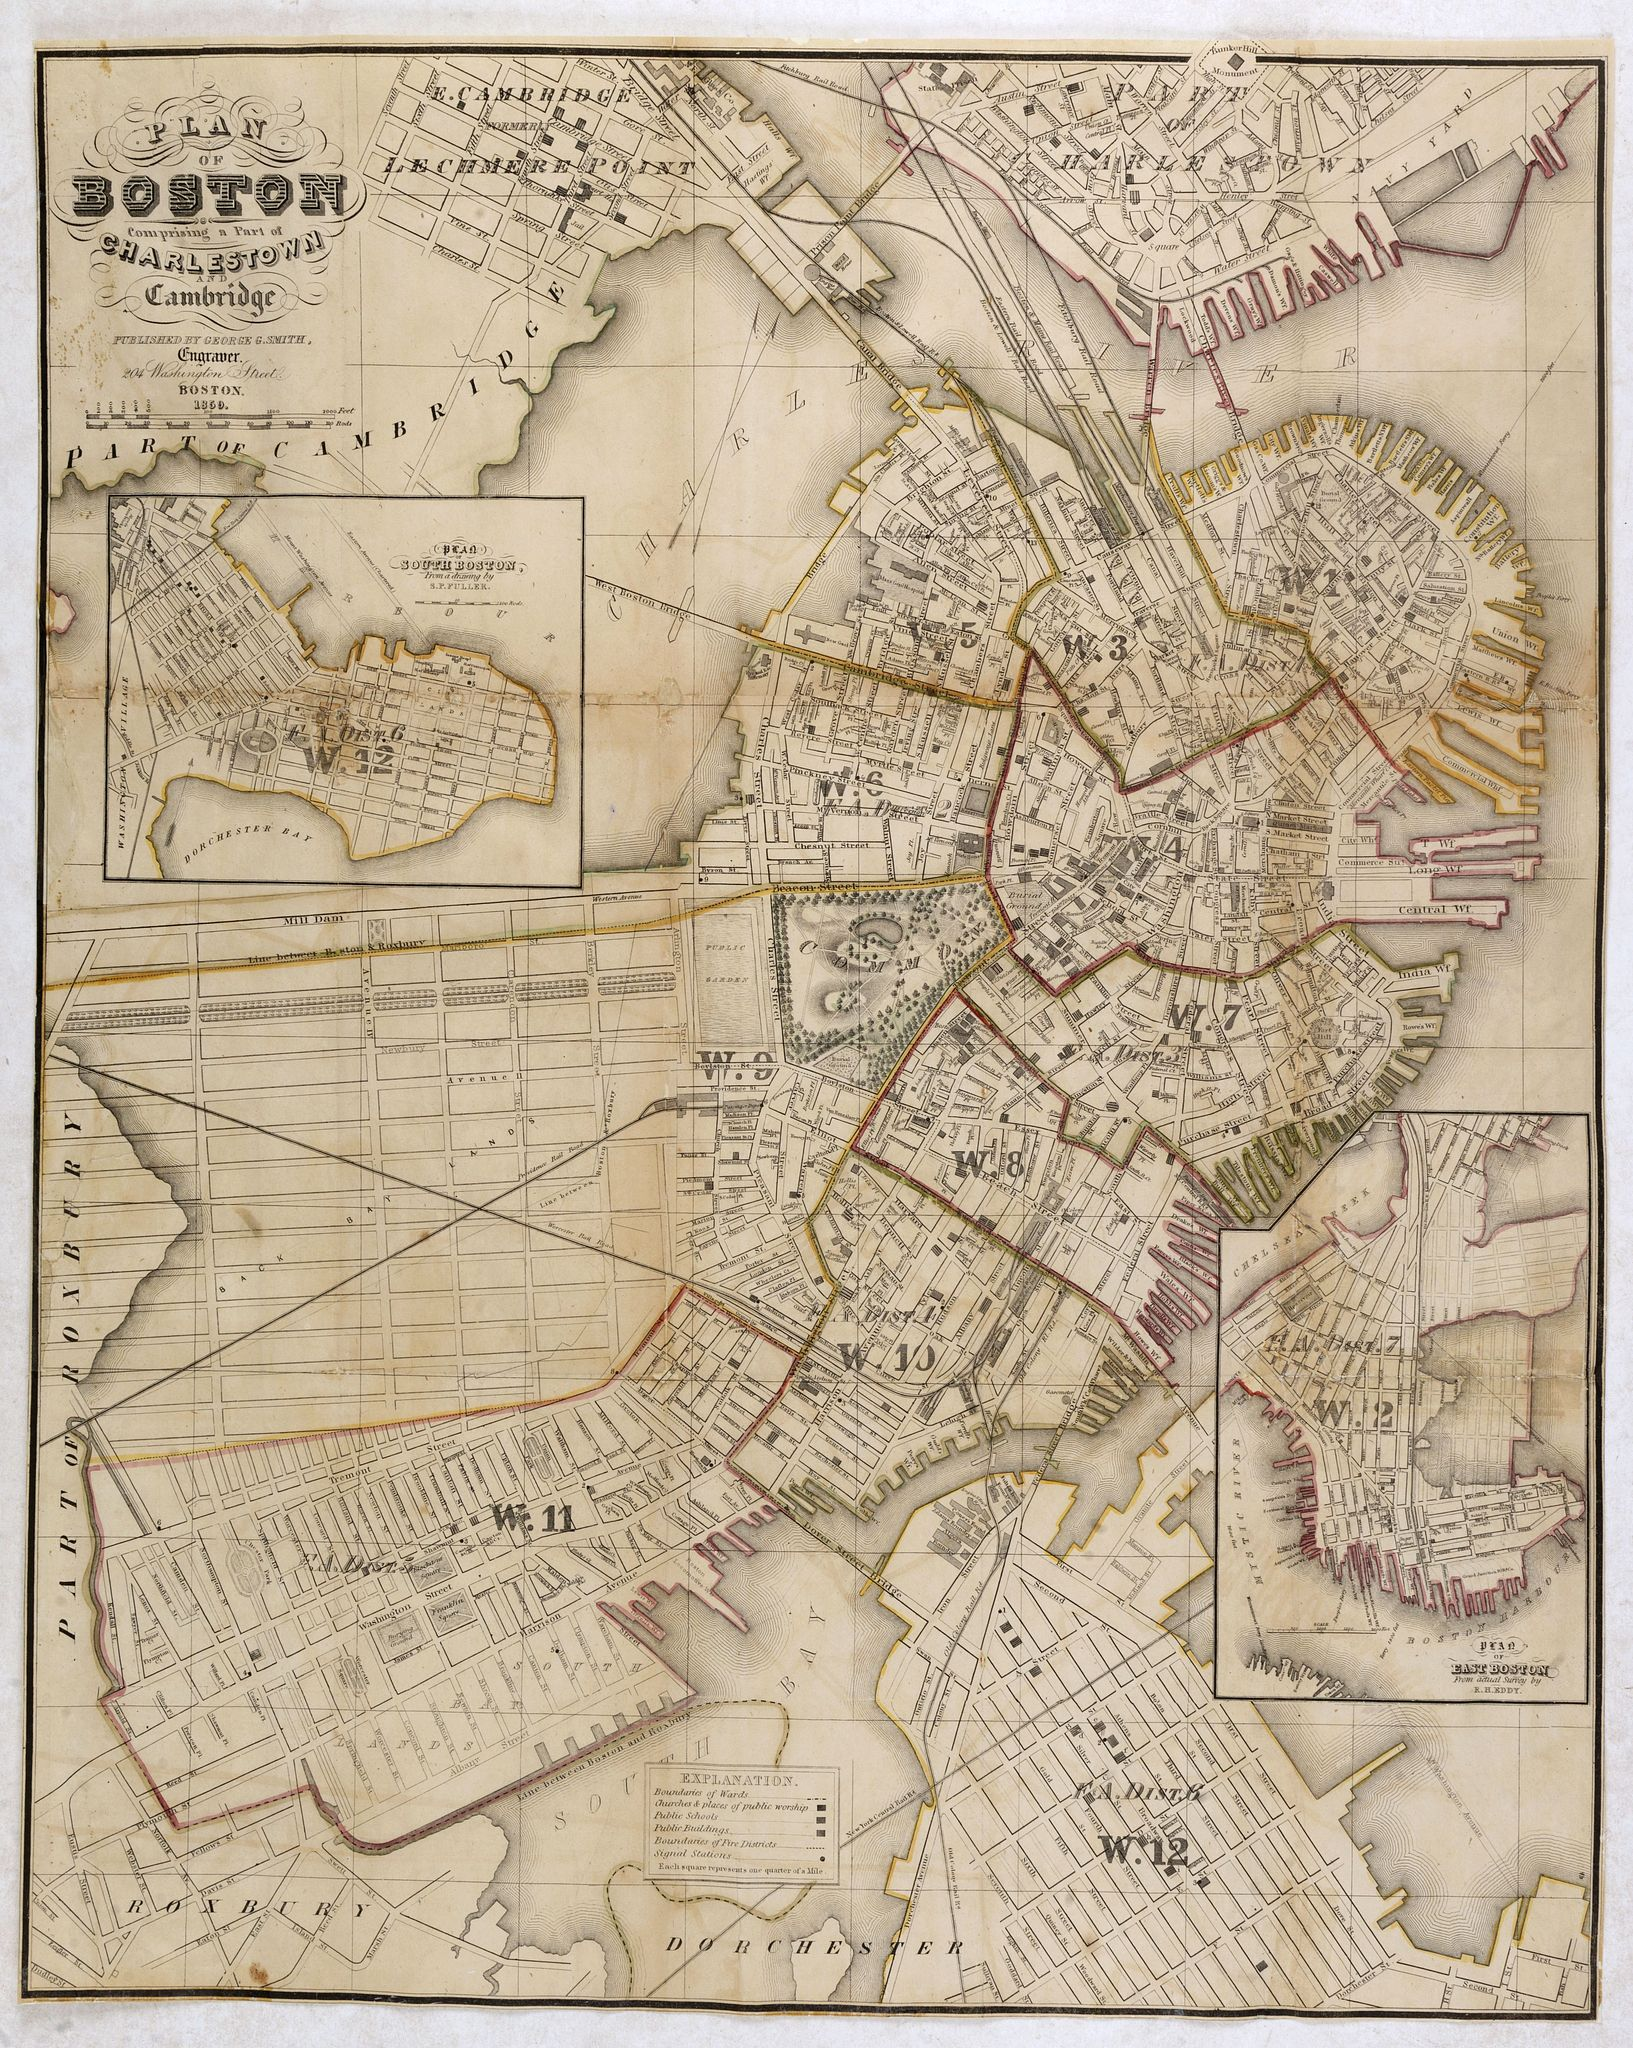 SMITH, George G. -  Plan Of Boston Comprising a Part of Charlestown and Cambridge. Published by George G. Smith, Engraver, Corner of Washington & Franklin Sts. Boston. 1846.